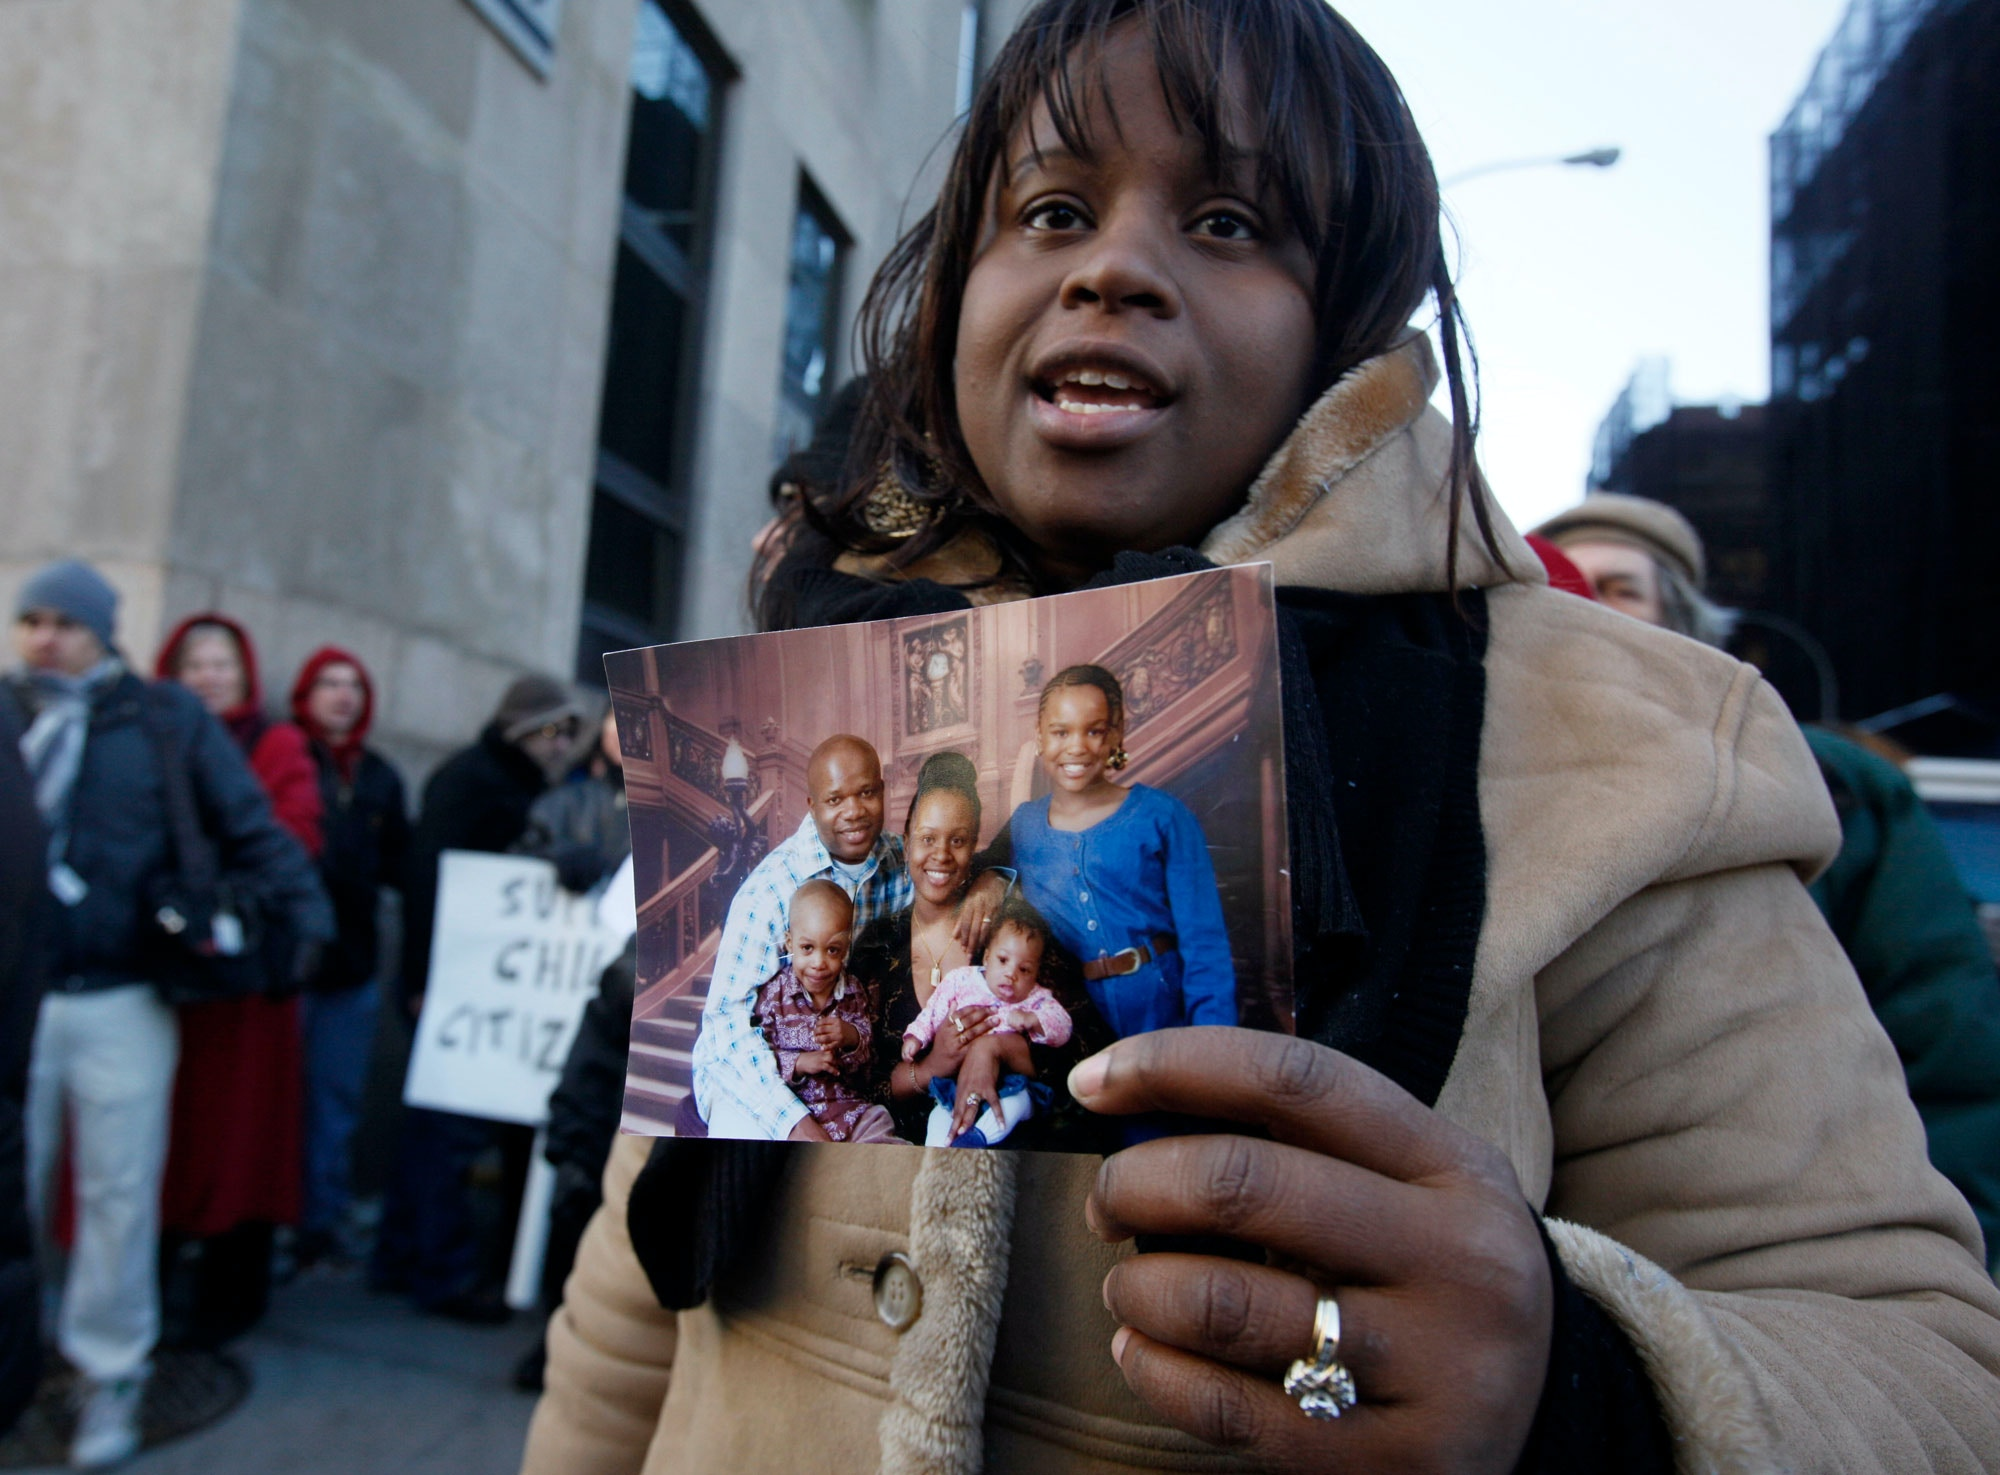 Jani Montrevil, wife of Jean Montrevil holds a photo of her family during a demonstration to protest the incarceration and possible deportation of her husband Jean Montrevil,Tuesday, Jan. 5, 2010 in New York. She was protesting the detention of her husband facing deportation decades after his drug conviction. The New Sanctuary Coalition of New York City said Montrevil has been detained by Immigration and Customs Enforcement officials since Dec. 30. In the photo are Jean Montrevil, left, holding son Jahsiah, Jani, center holding daughter Jamya, and daughter Janiah. (AP Photo/Mary Altaffer)